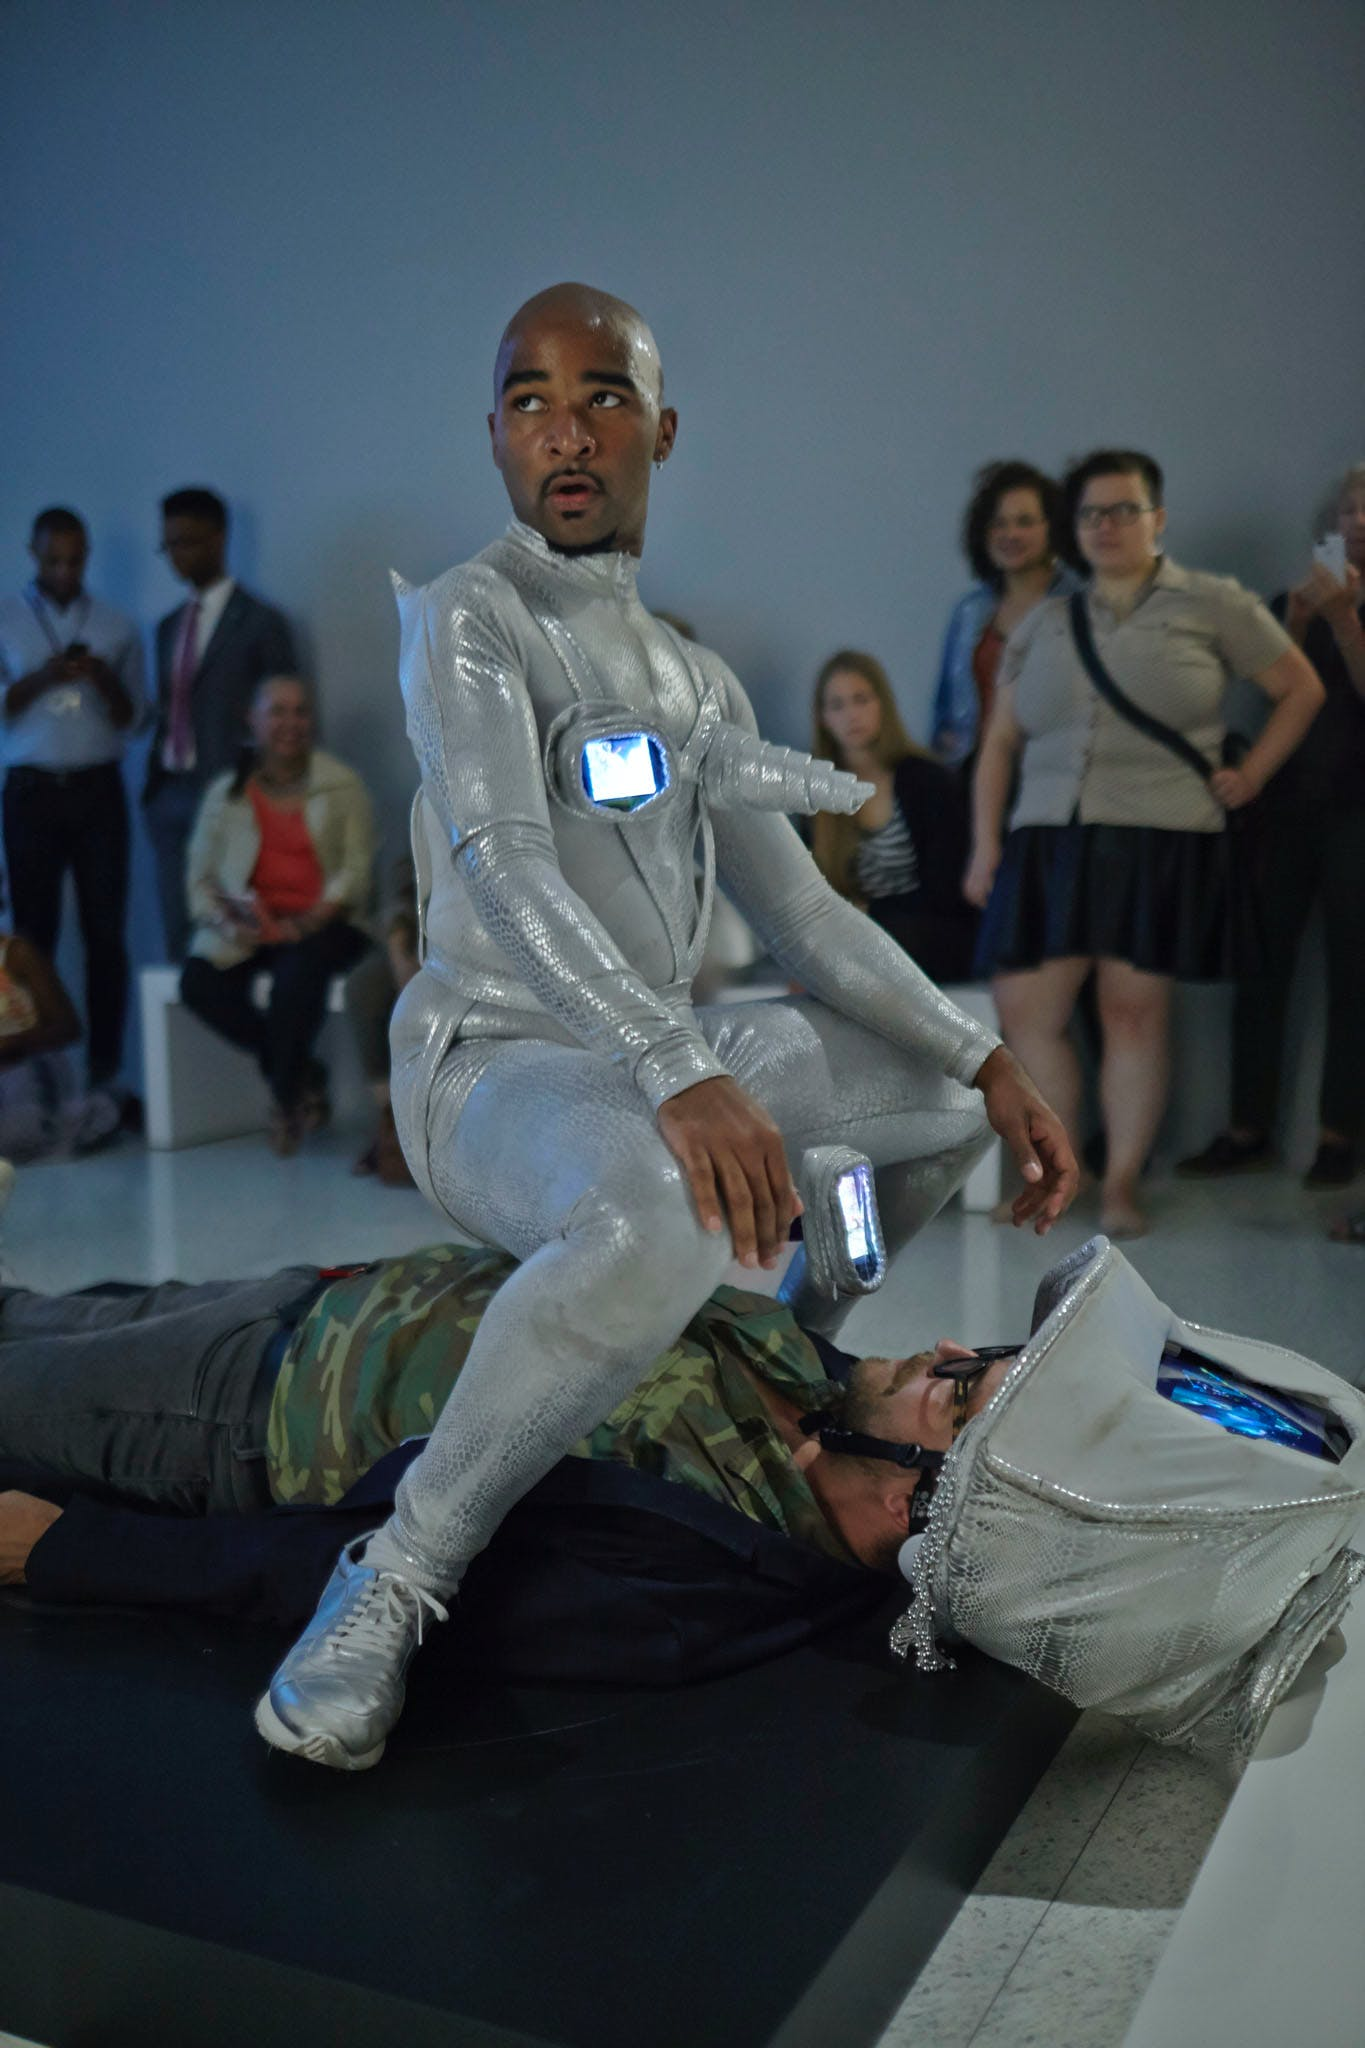 Jacolby Satterwhite, Orifice, 2010-2012; part of the exhibition Radical Presence: Black Performance in Contemporary Art, 2014